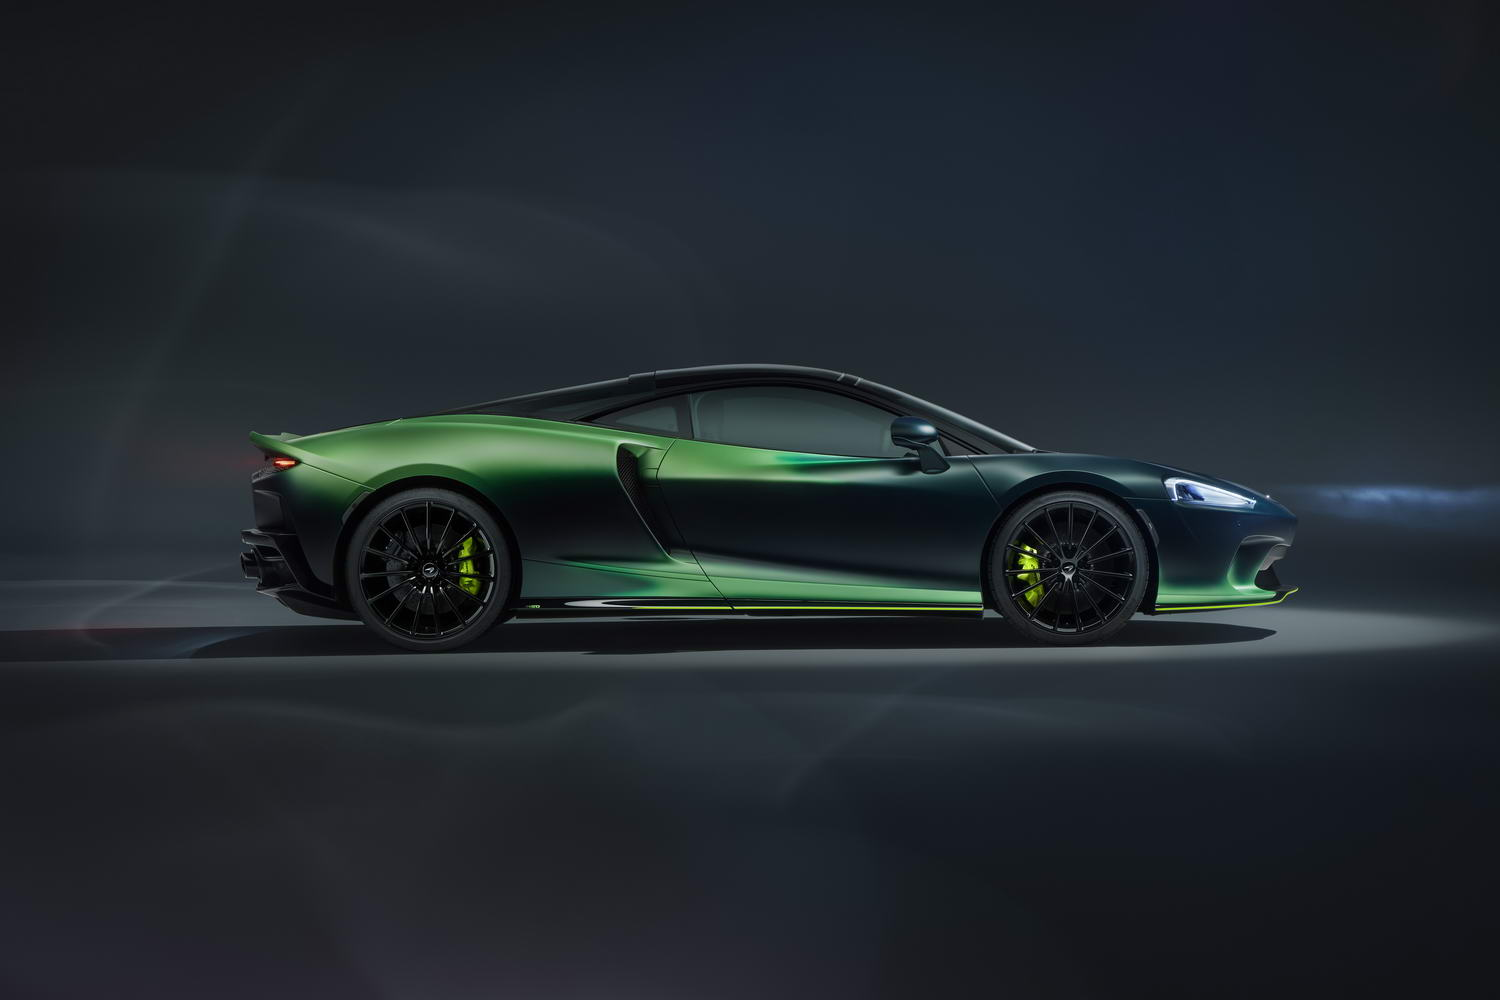 Car News | Go green with envy over McLaren GT MSO | CompleteCar.ie